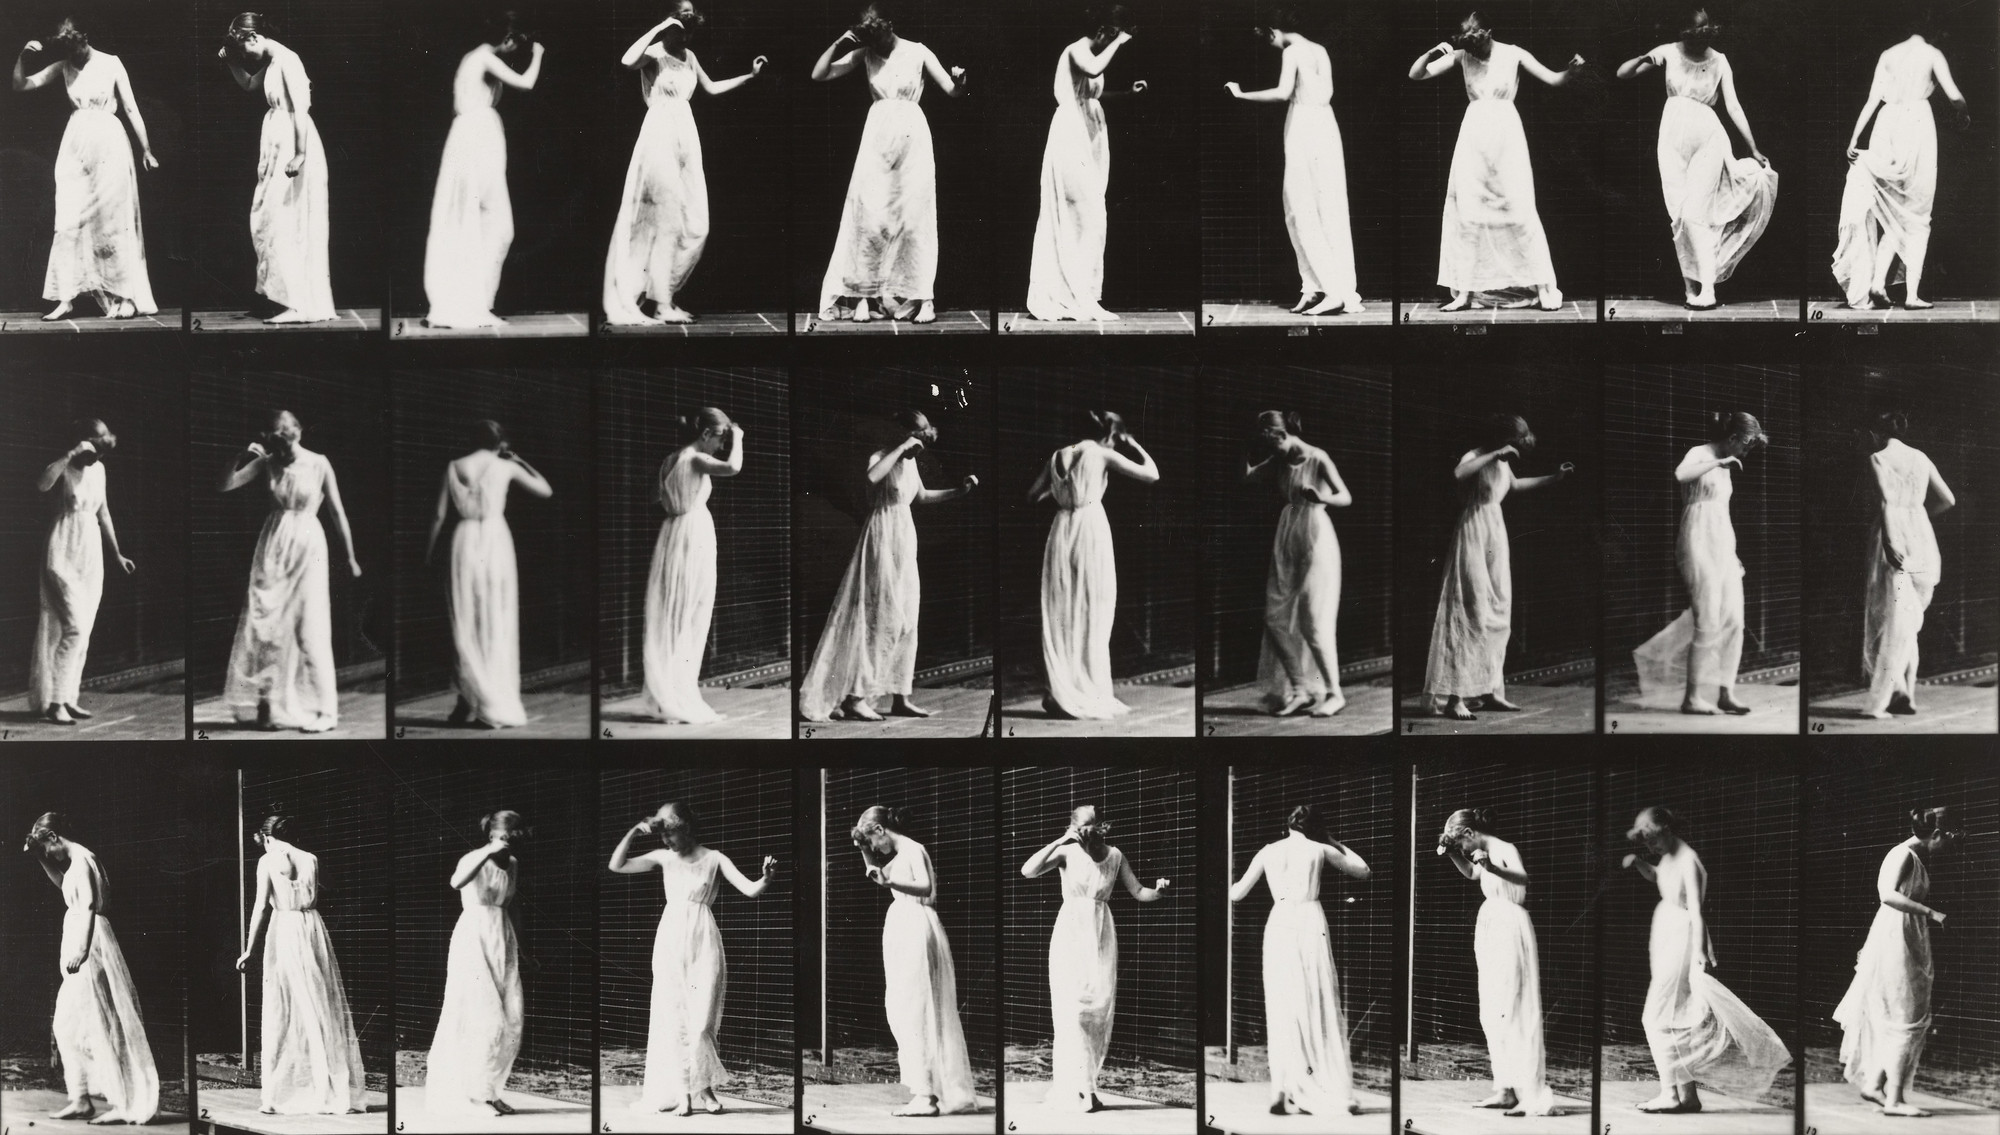 Eadweard J. Muybridge. Woman Dancing: Plate 194 from Animal Locomotion (1887). 1884-86